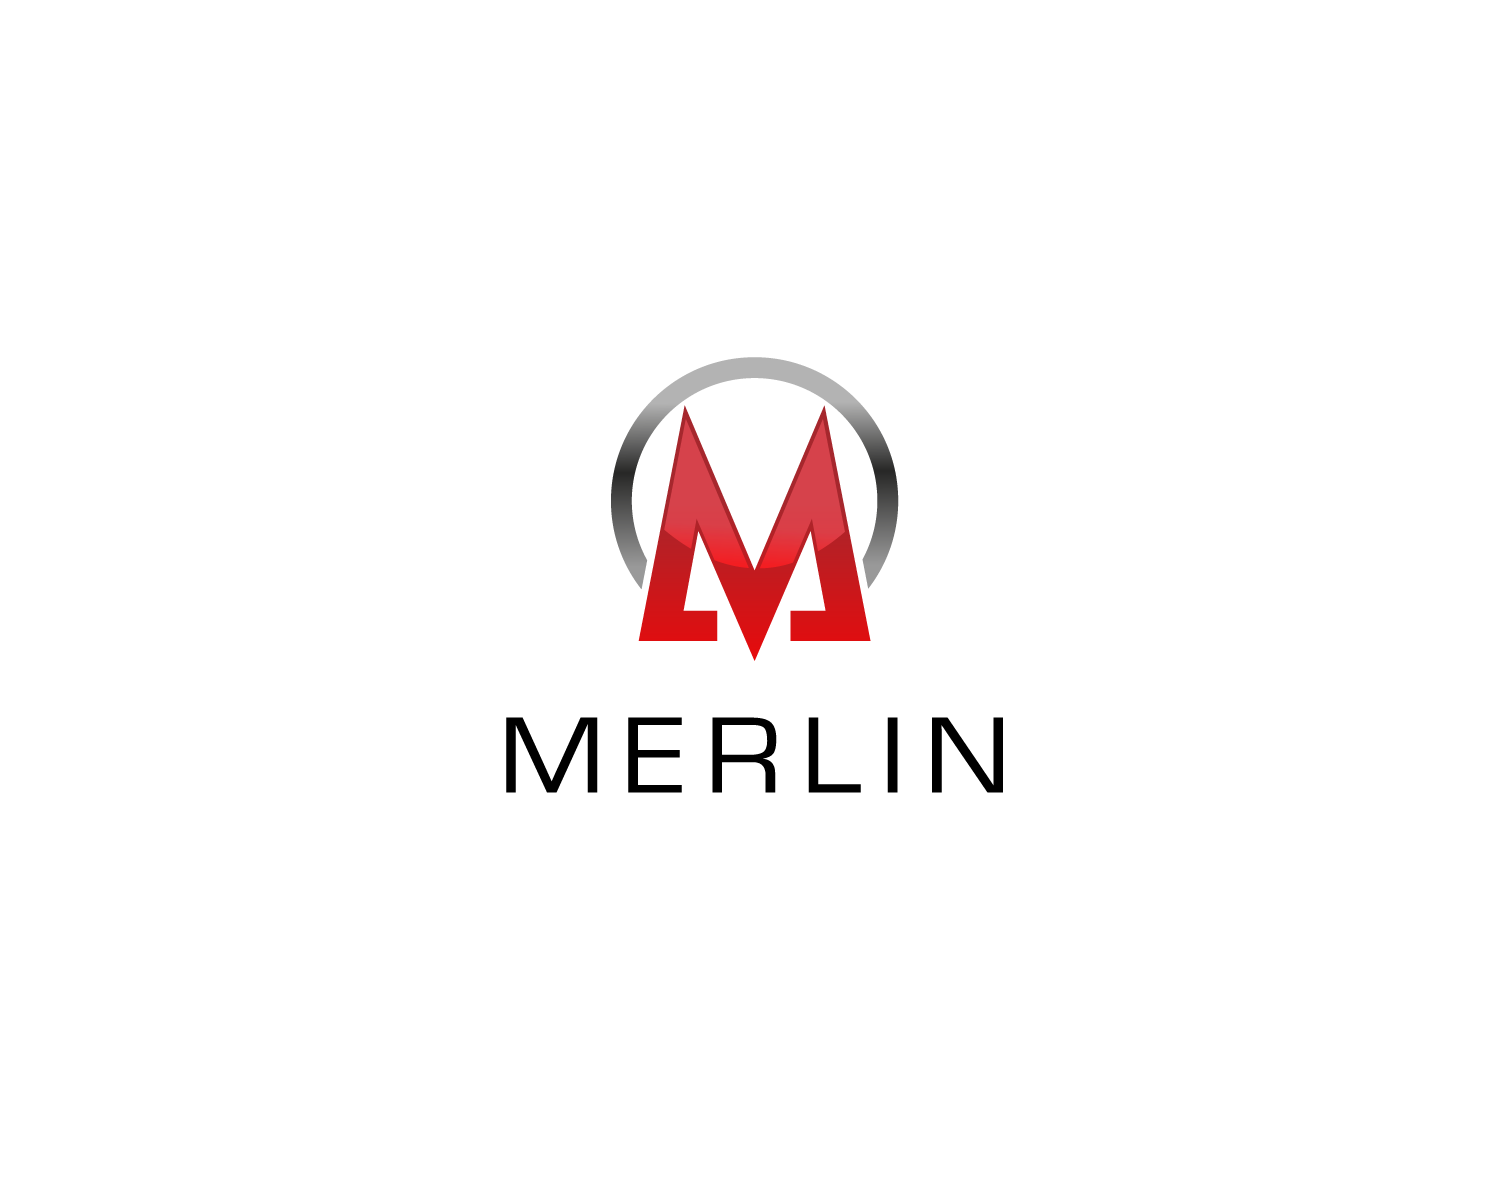 Logo Design by greycrow - Entry No. 123 in the Logo Design Contest Imaginative Logo Design for Merlin.